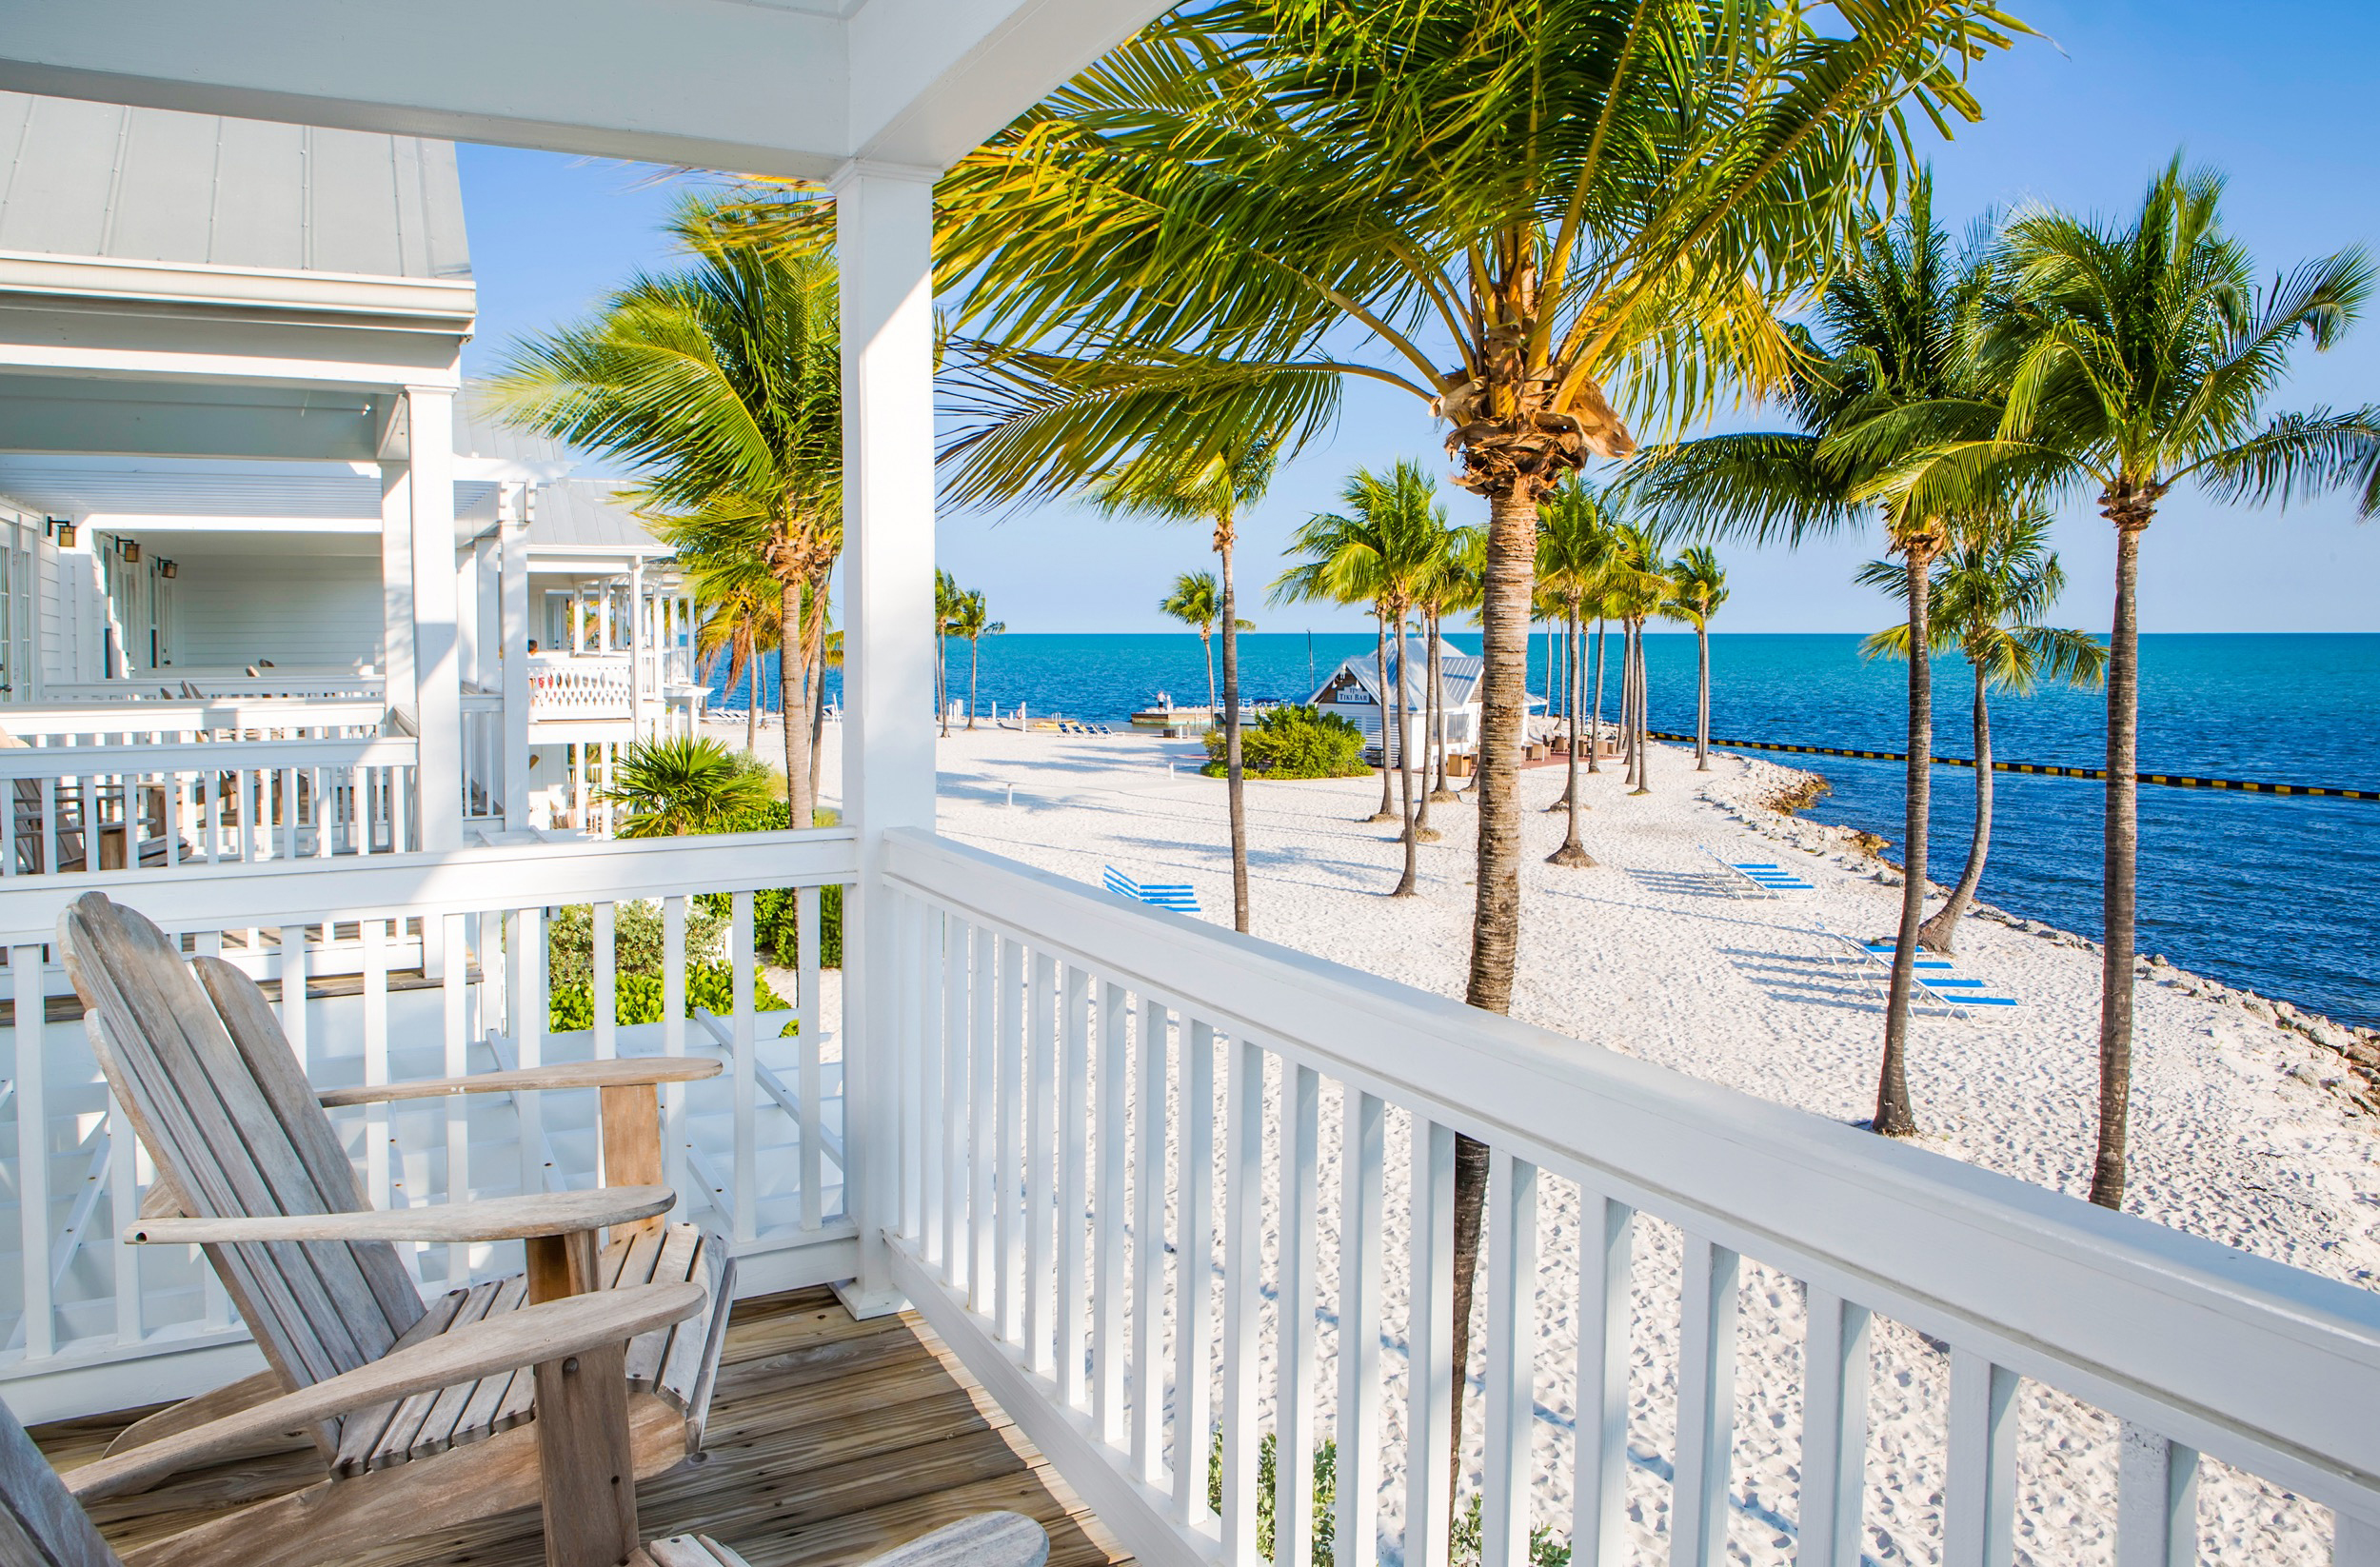 Private balcony overlooking white sand beach in the Florida Keys